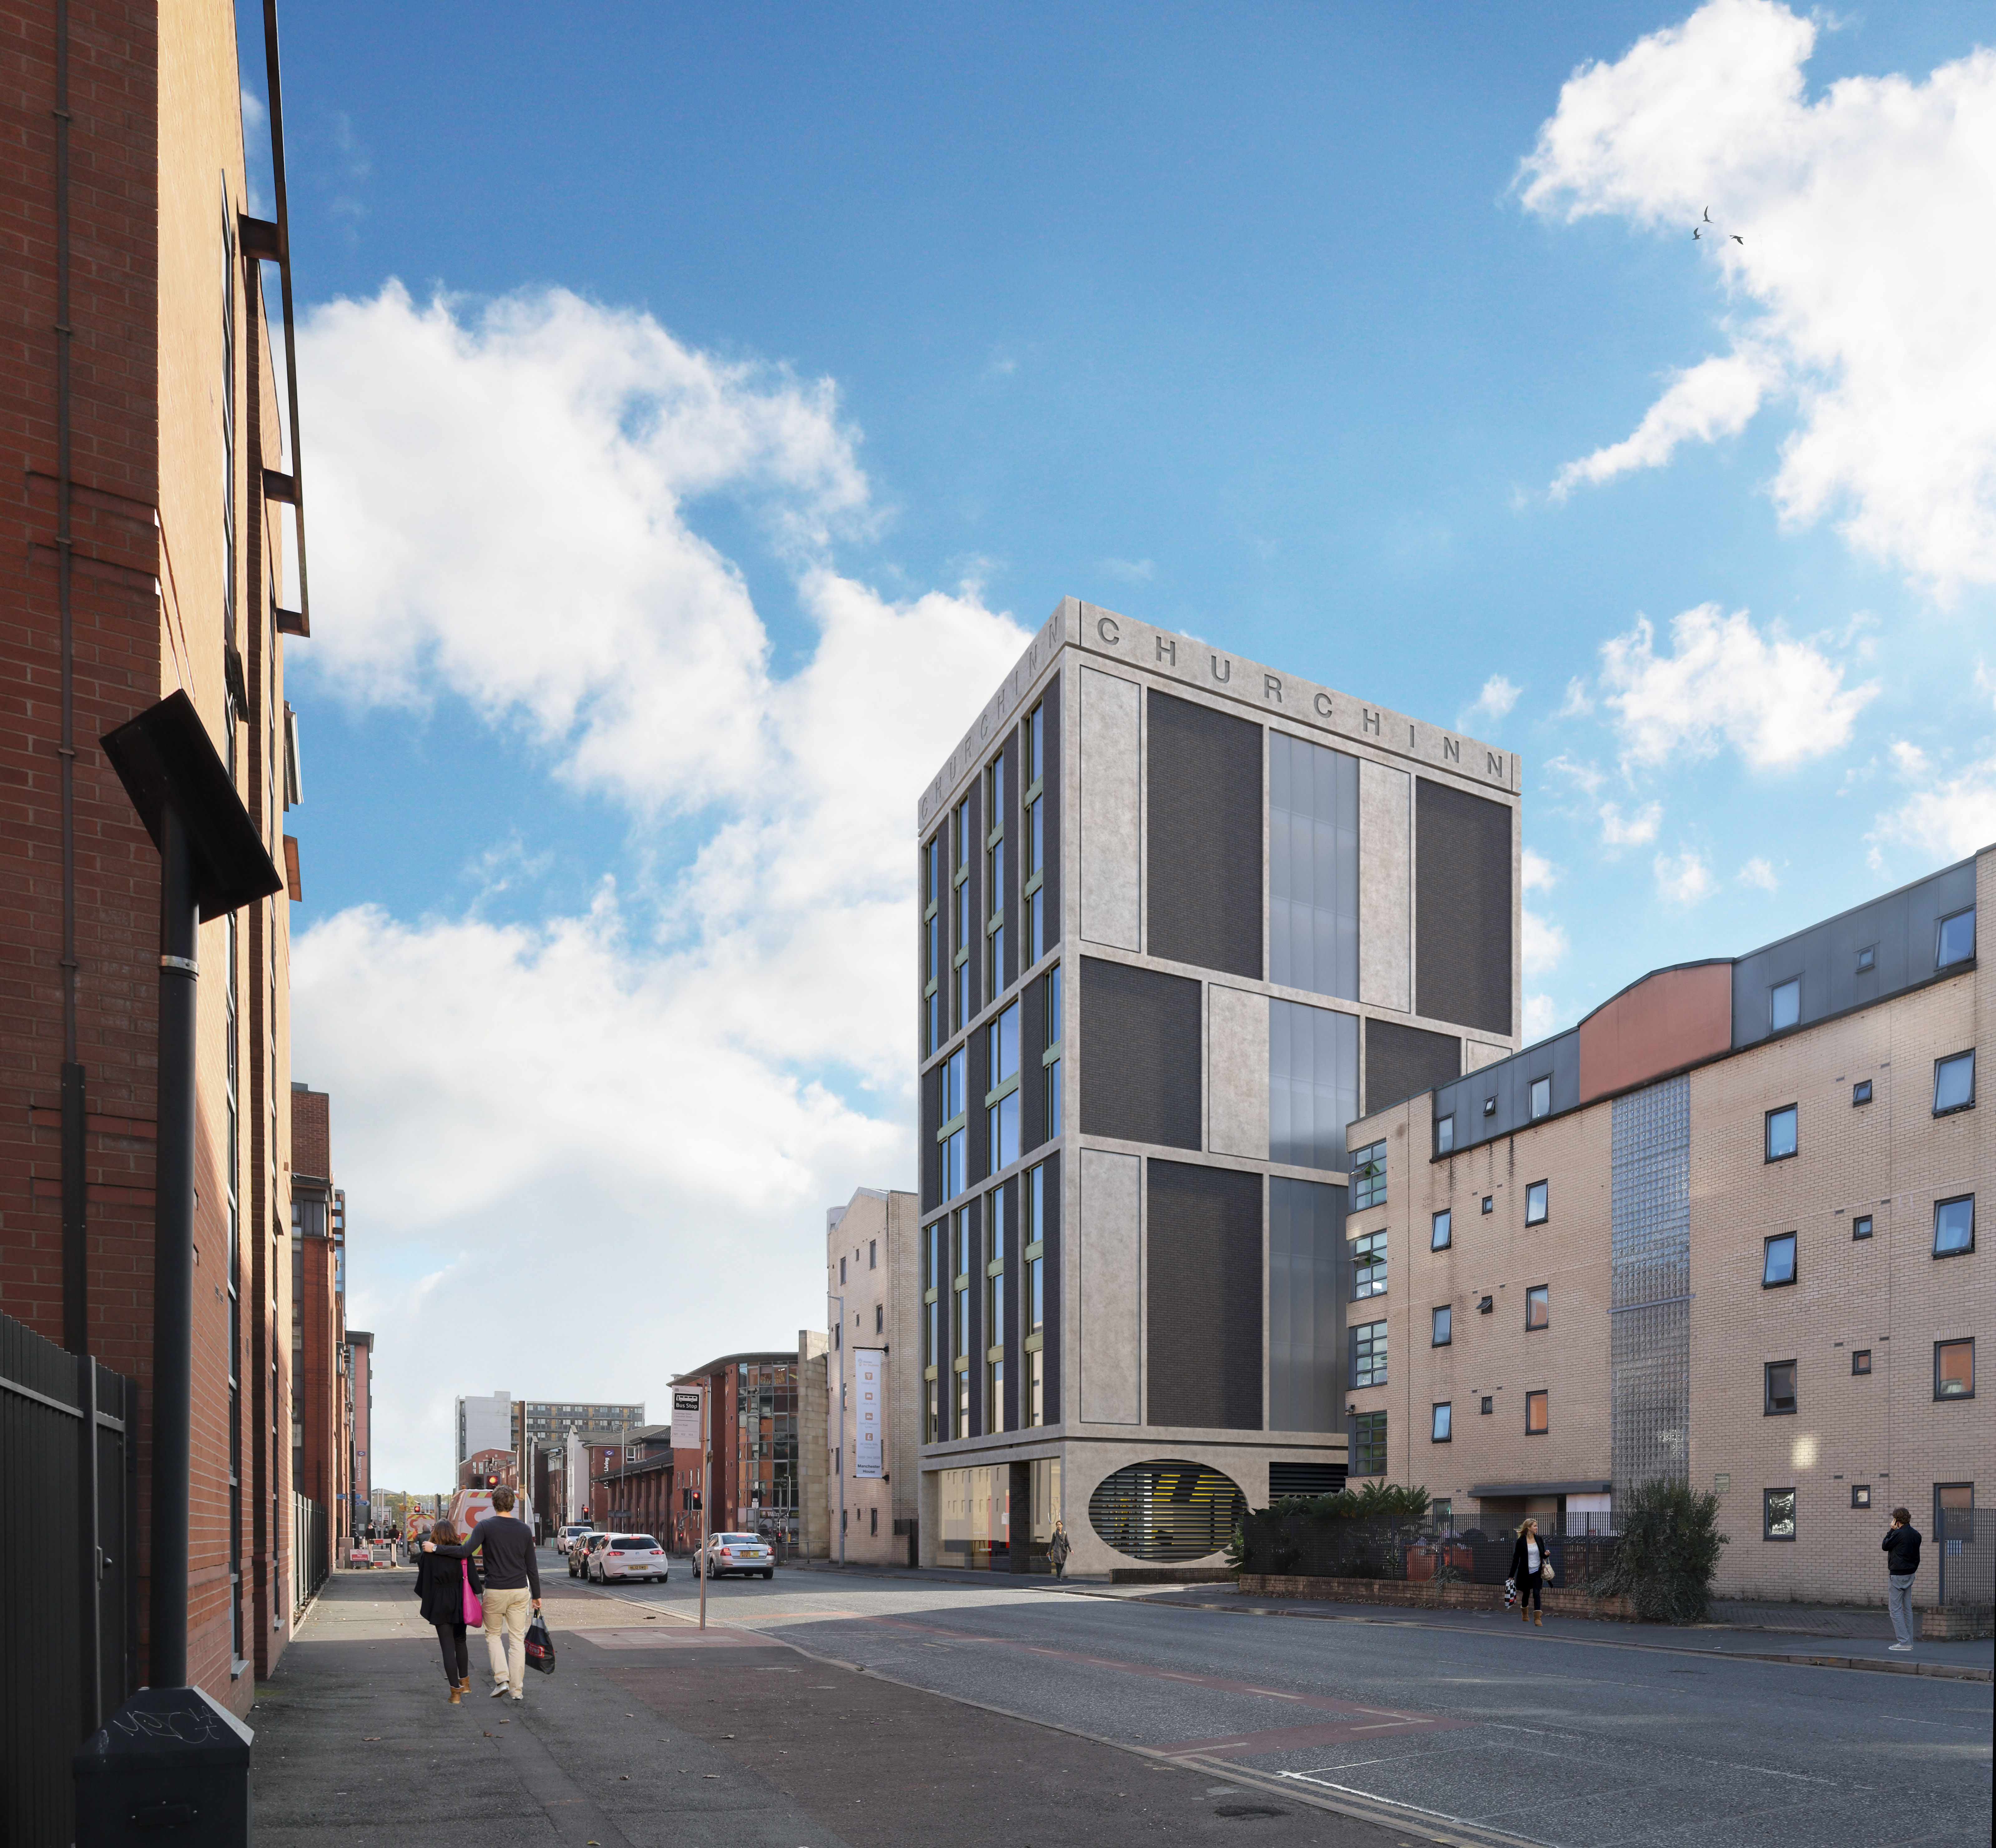 Approval of Manchester Student Residence Strikes Positive Note for the Future